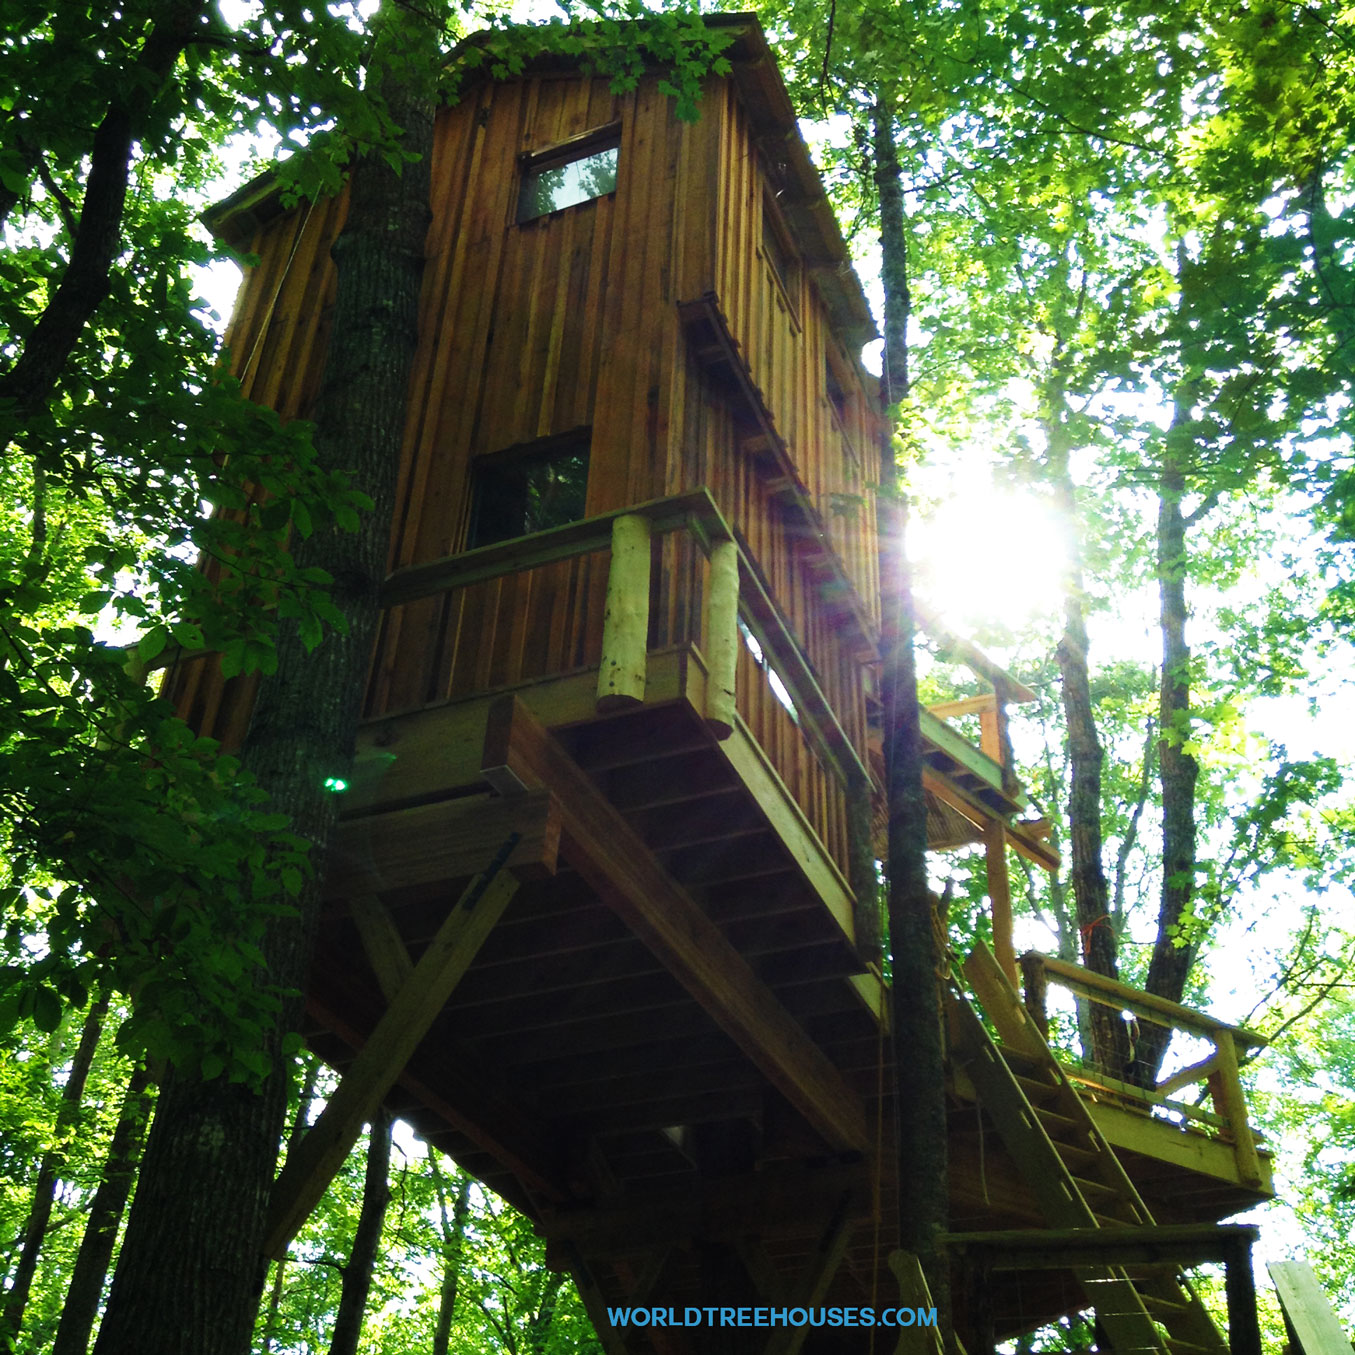 World-Treehouse-Brevard-Asheville